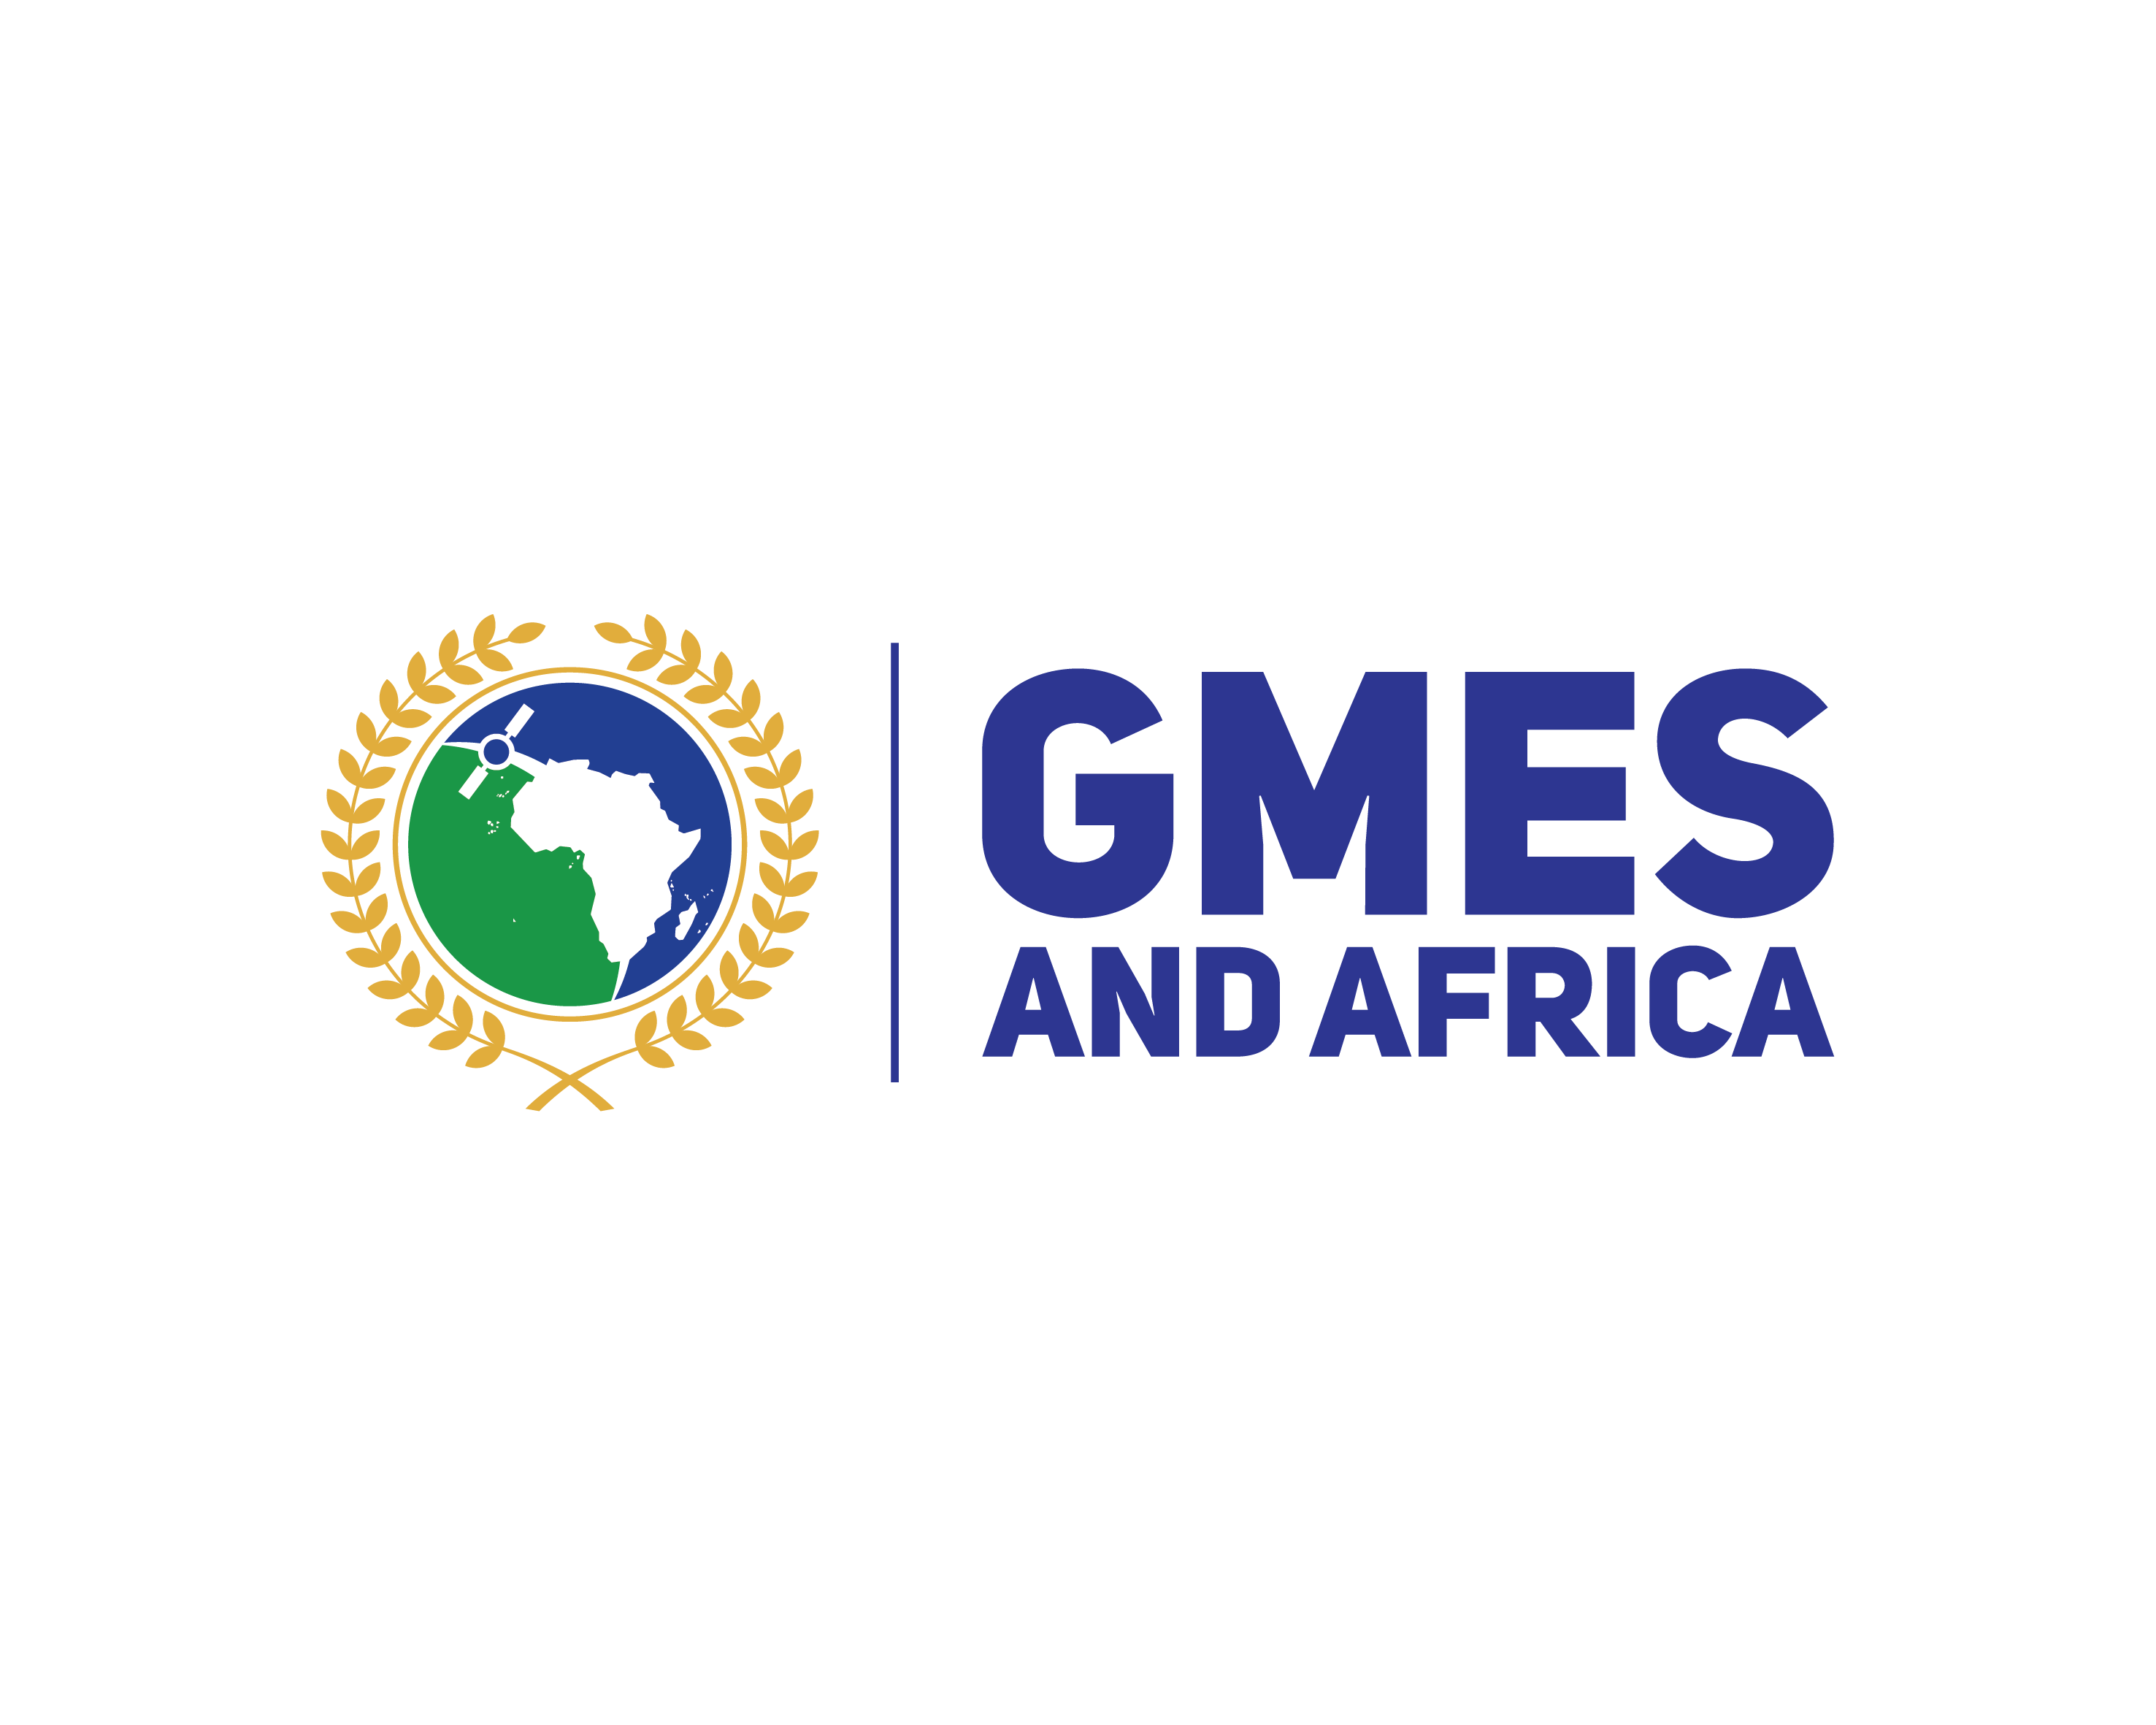 GMES and Africa